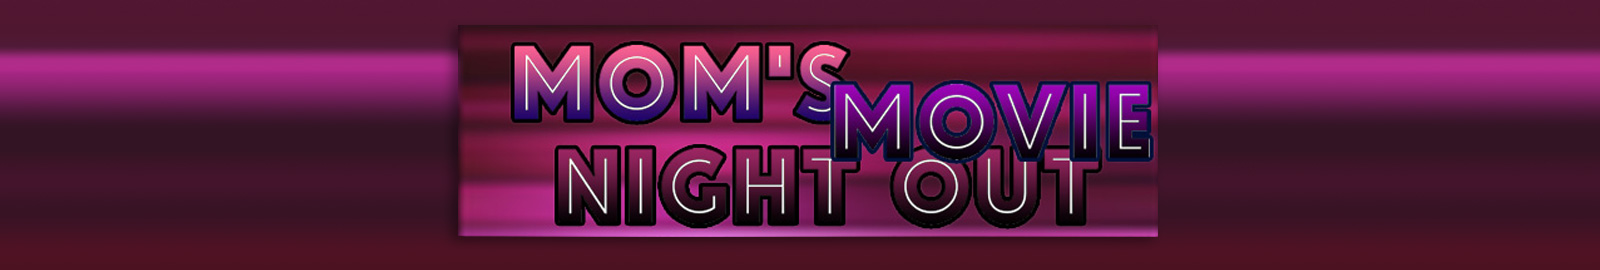 Mom's Night Out Mom's deserves a Lux Level night out